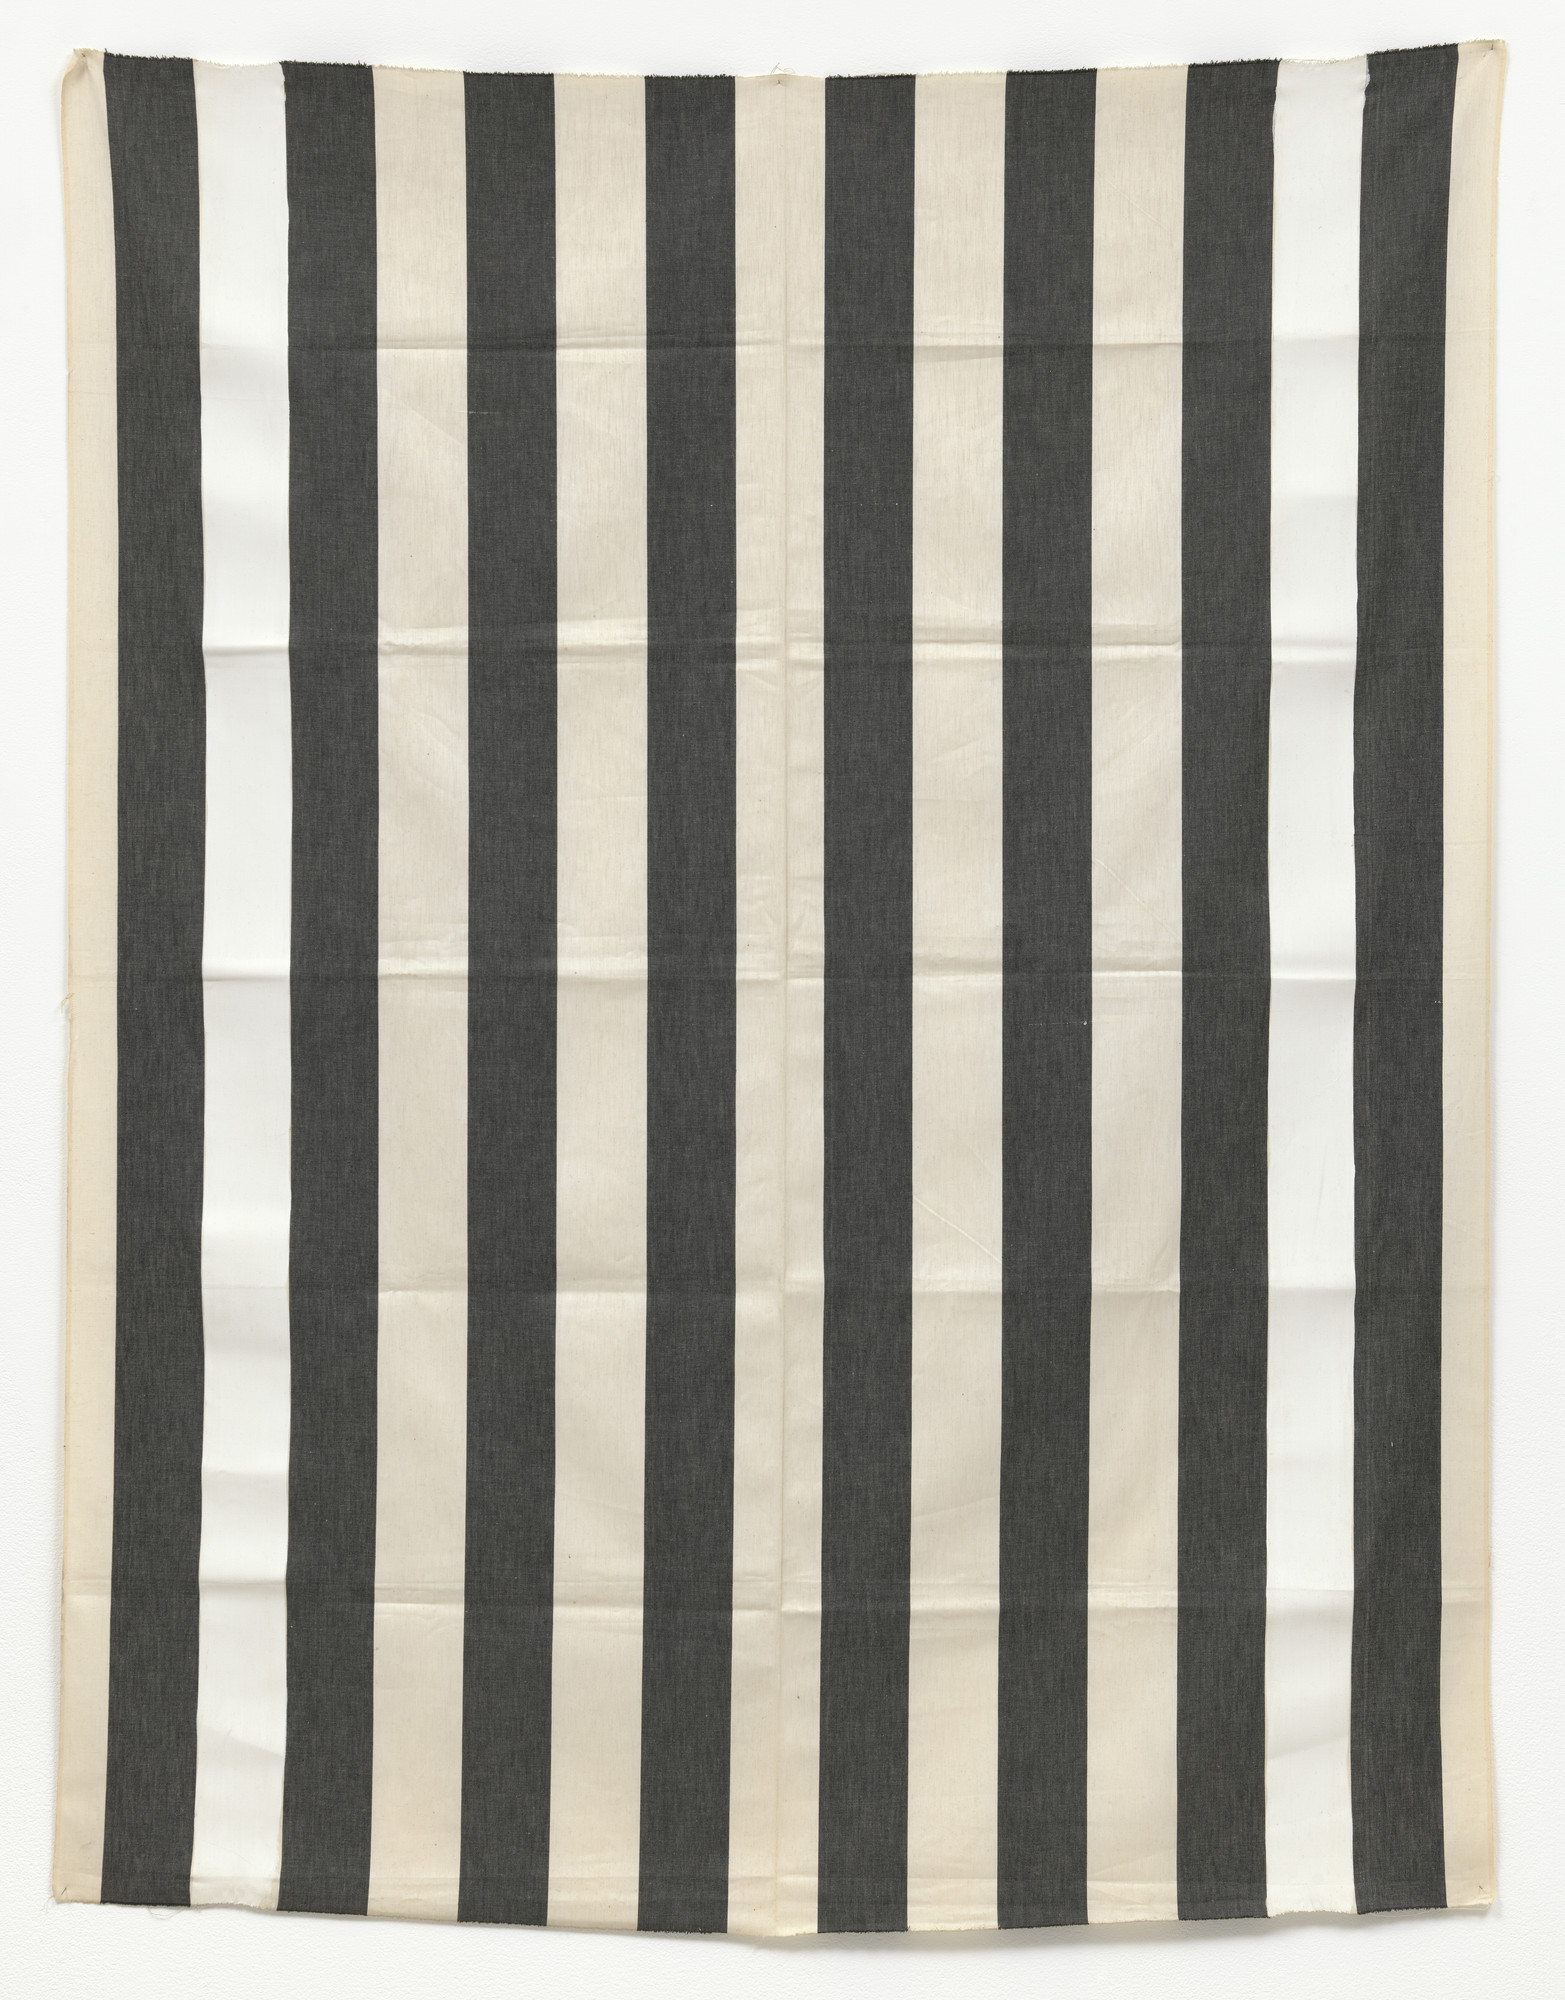 Daniel Buren. Black and white striped fabric. External white bands covered over with white paint, recto-verso. 1970